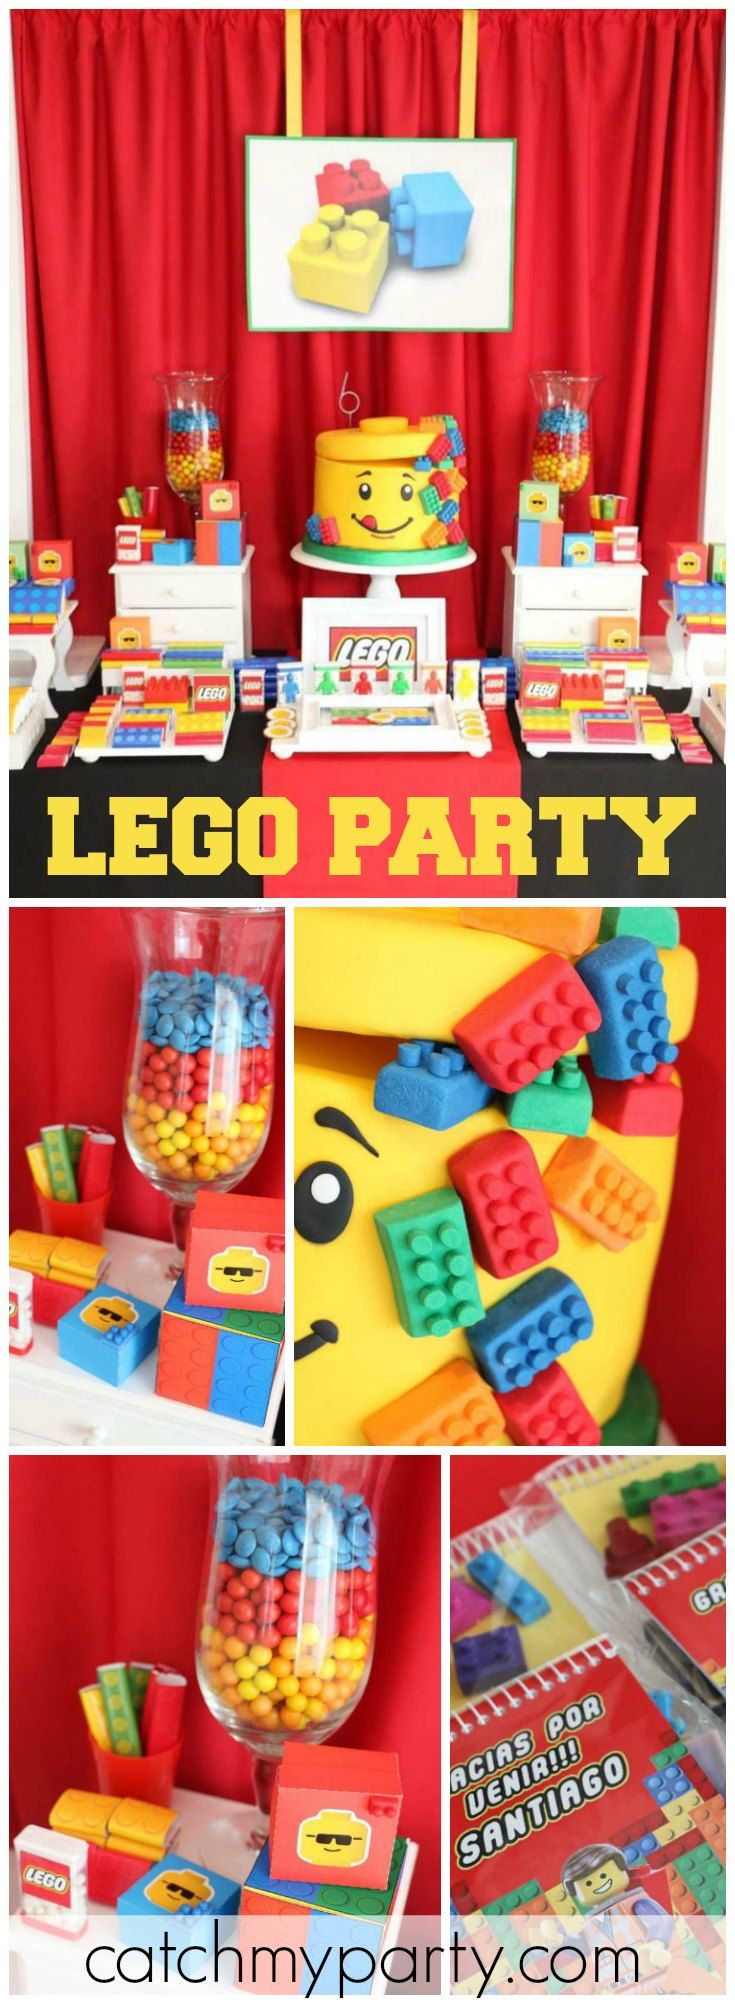 Fun Birthday Party Ideas For 11 Year Old Boy